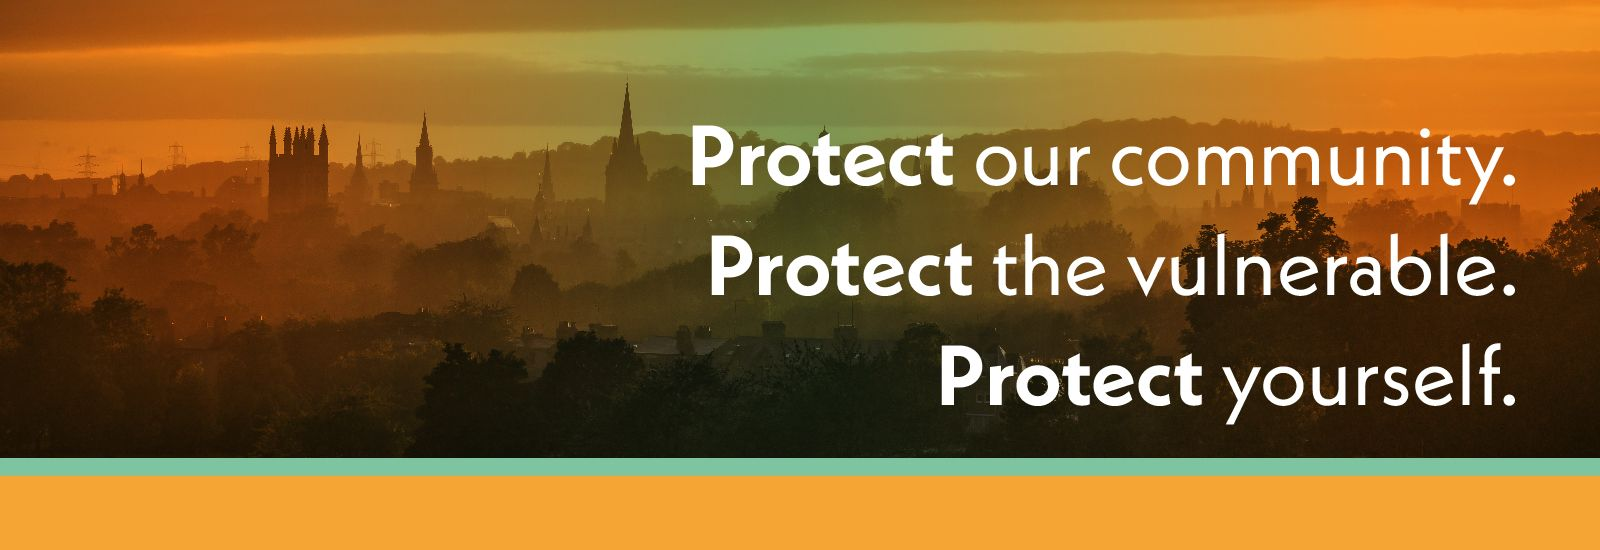 A view of Oxford from South Park showing spires and trees with the text 'Protect our community. Protect the vulnerable. Protect yourself.'